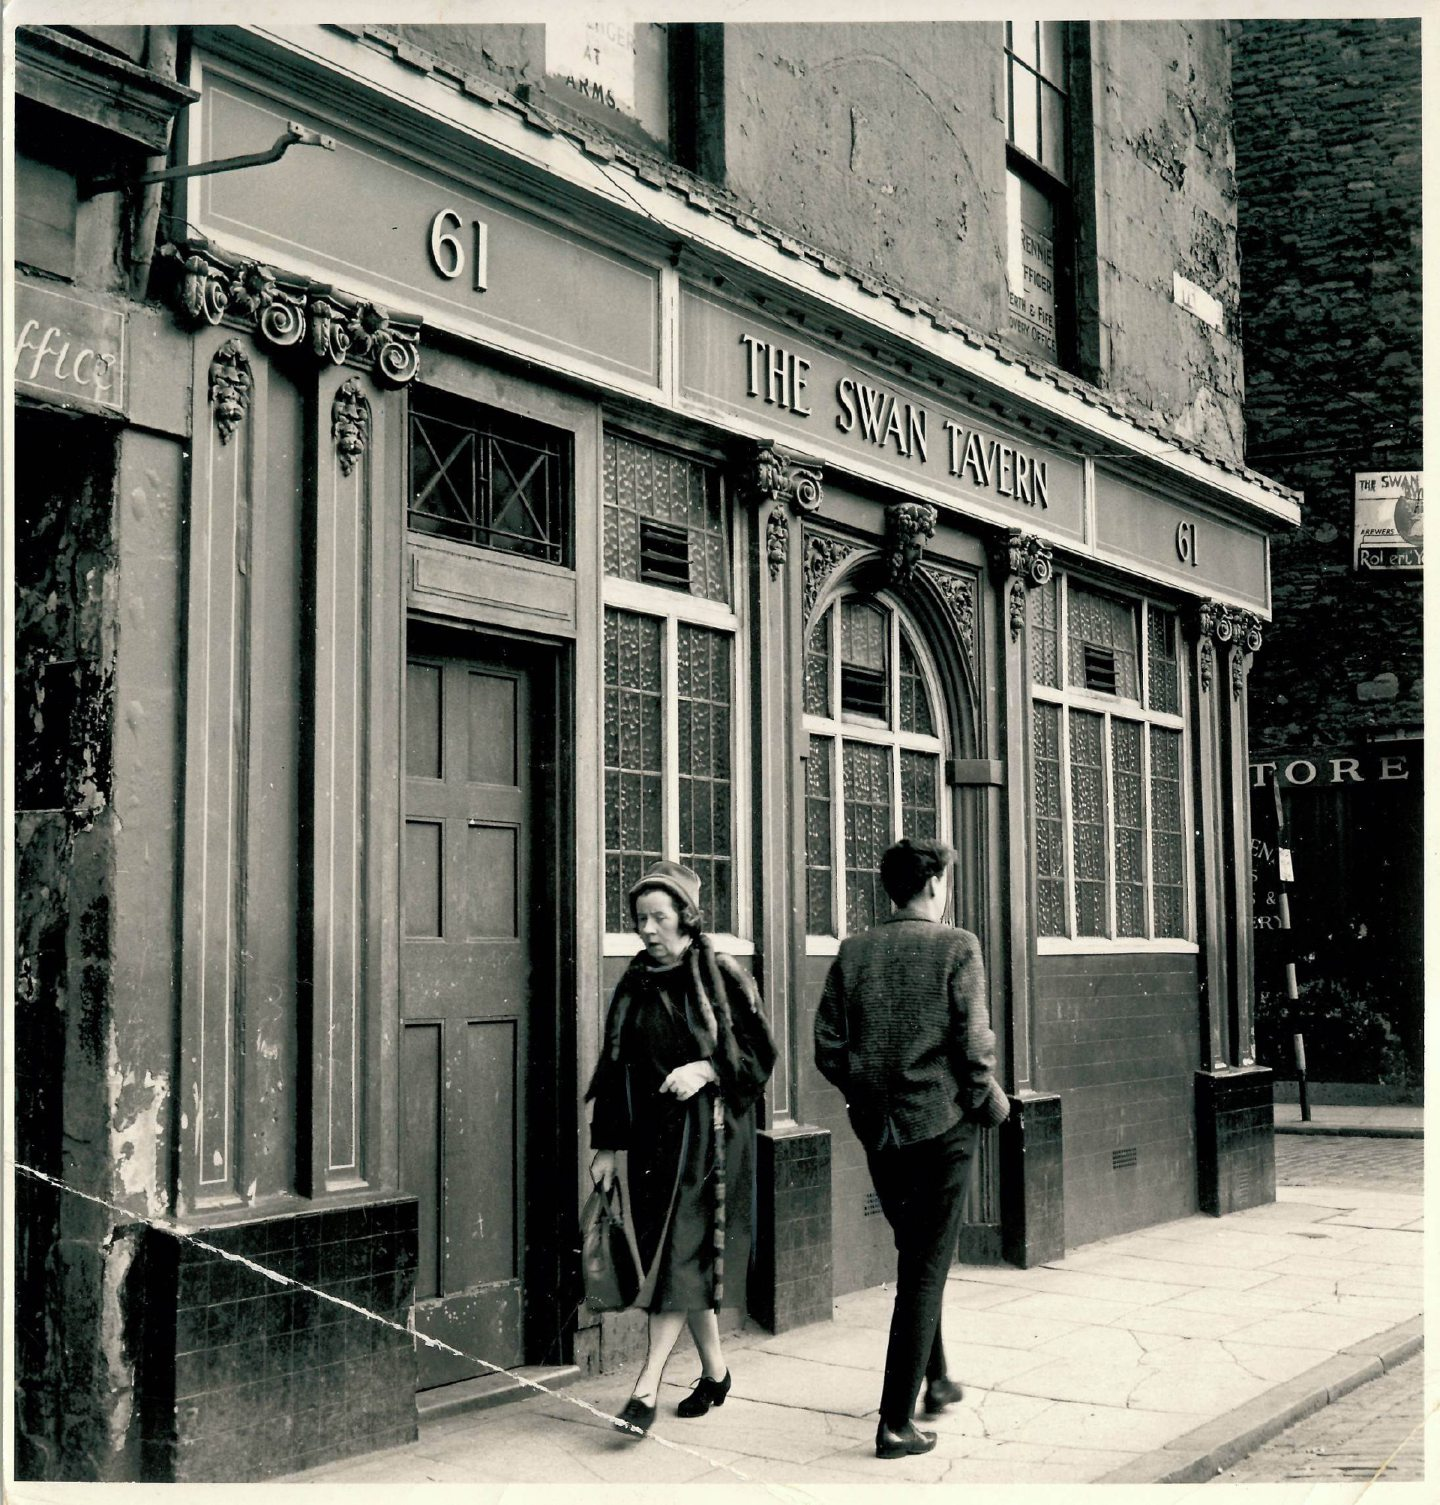 The Swan Tavern, Dundee.